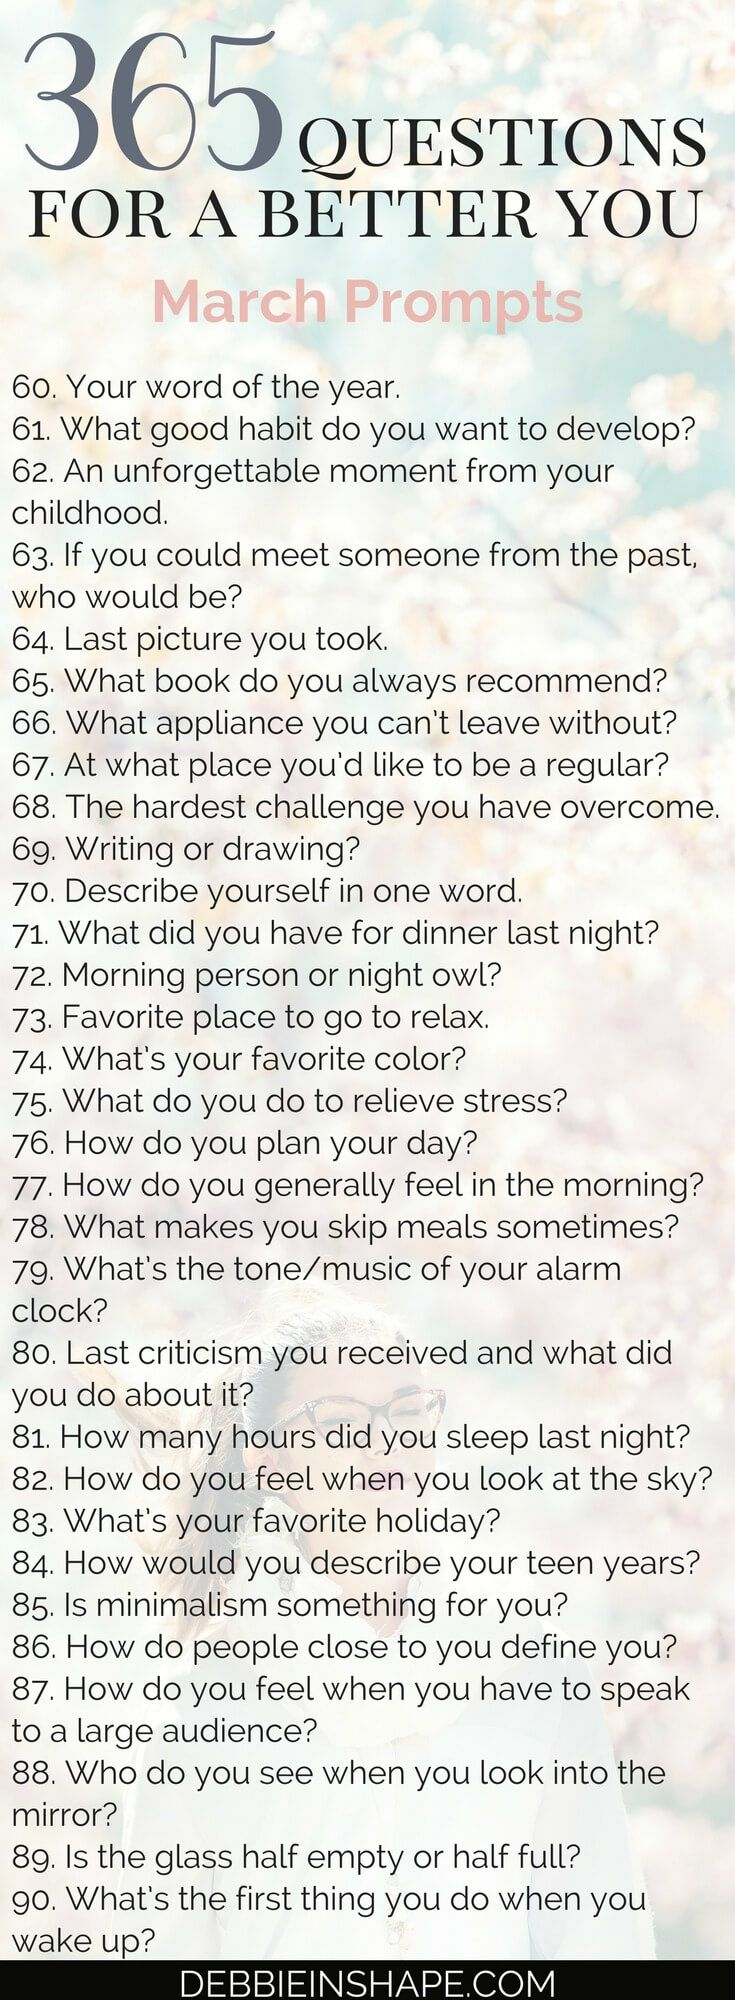 It's time to wrap up the quarter with the 365 Questions For A Better You, the March edition. Your daily break for inspiration, relaxation, and self-discovery. Join my FREE VIP Tribe today to download the entire list and access exclusive content and deals. #productivity #confidence #success #personaldevelopment #journaling #prompts #365questionsforabetteryou